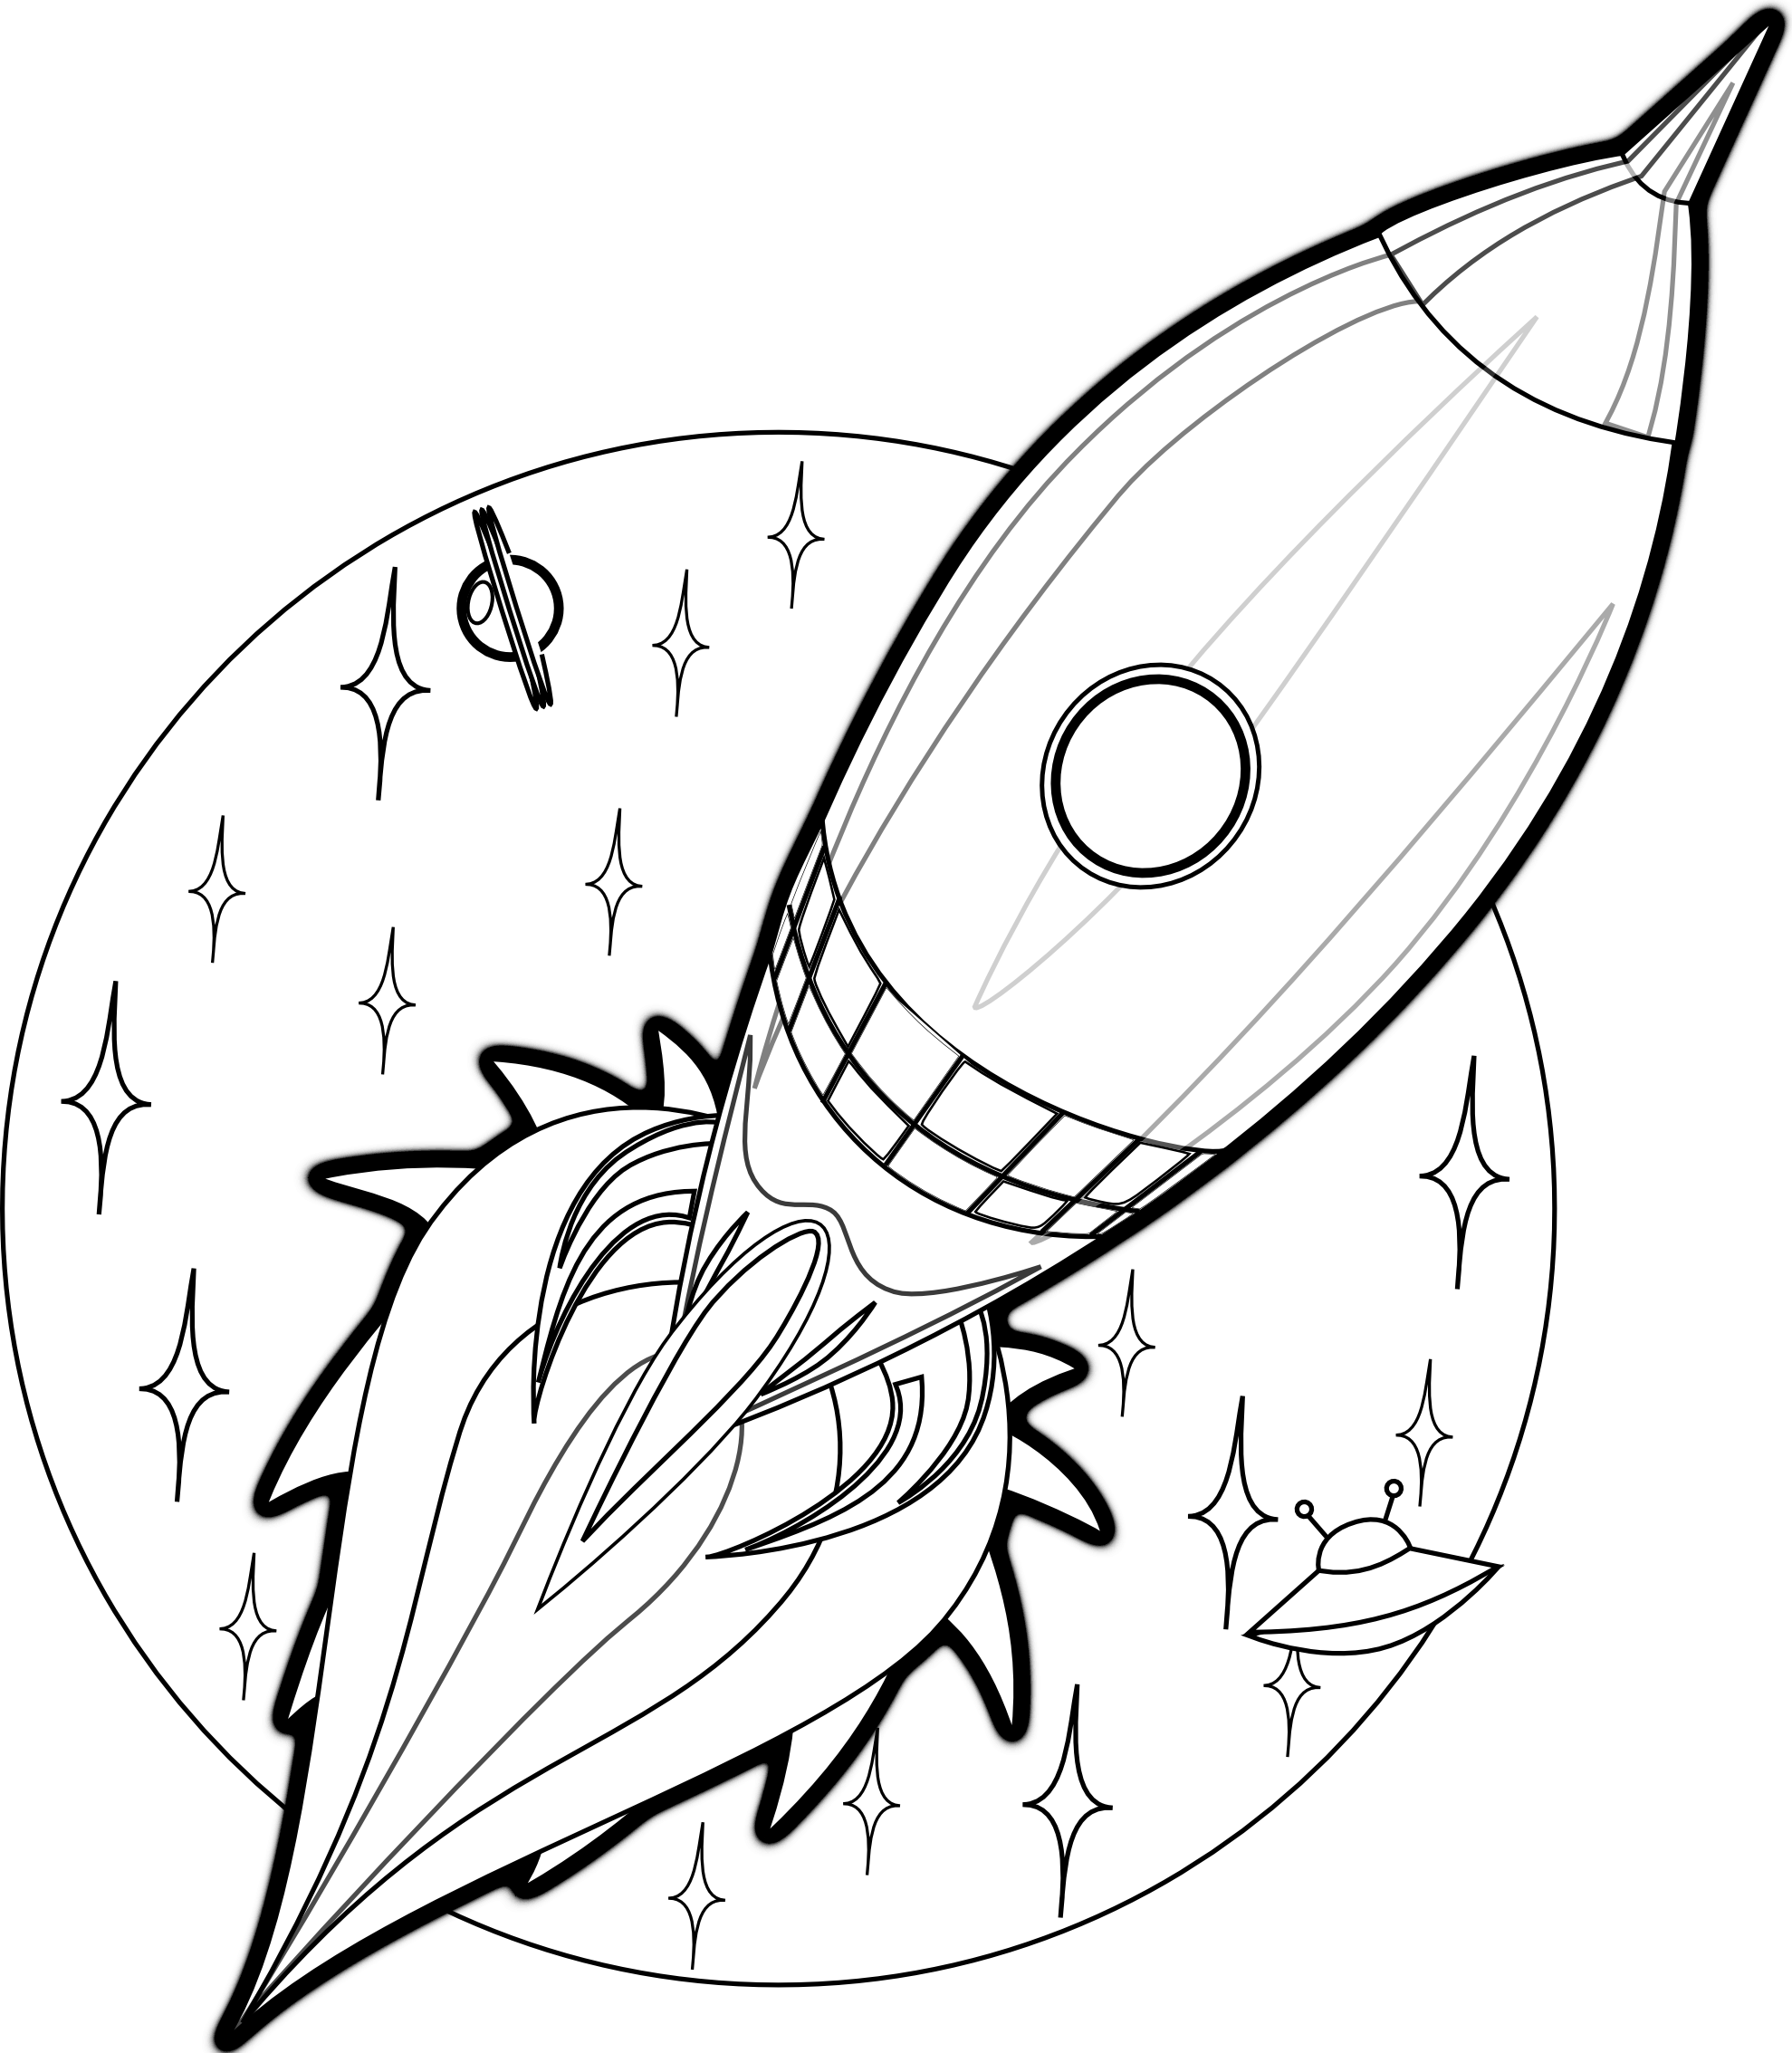 Uncategorized Rocket Coloring Sheets free printable rocket ship coloring pages for kids vbs space kids